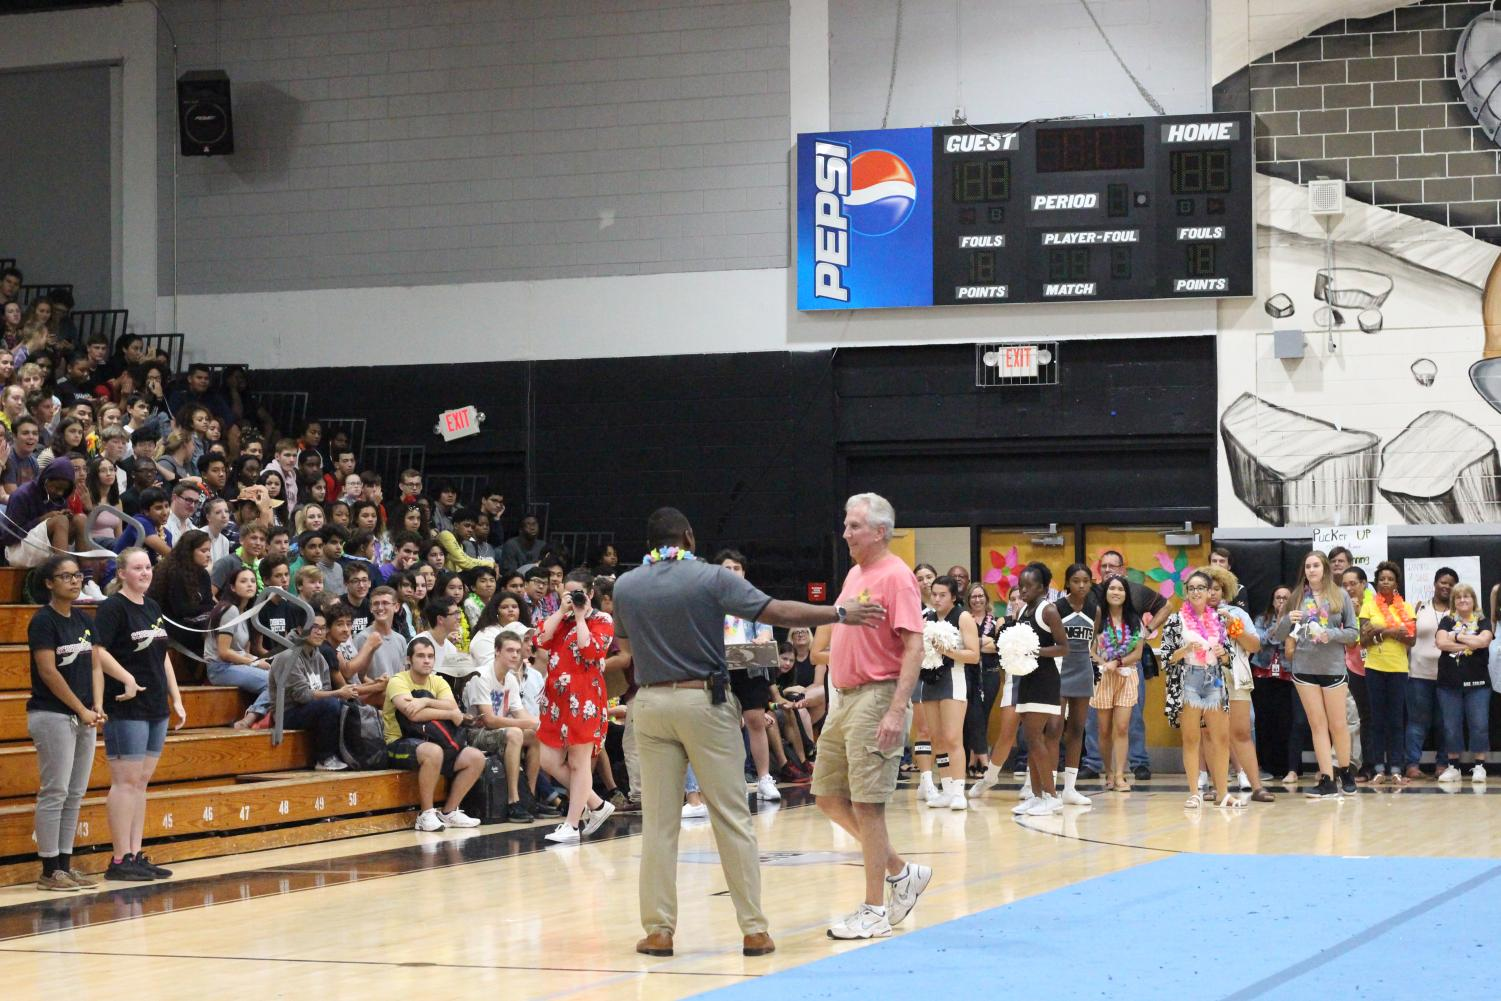 Principal+Bhoolai+dedicates+a+moment+of+the+pep+rally+to+honor+Bill+Gondridge+going+into+retirement.+The+student+body+wishes+him+a+goodbye+after+his+many+years+of+teaching+at+Robinson.